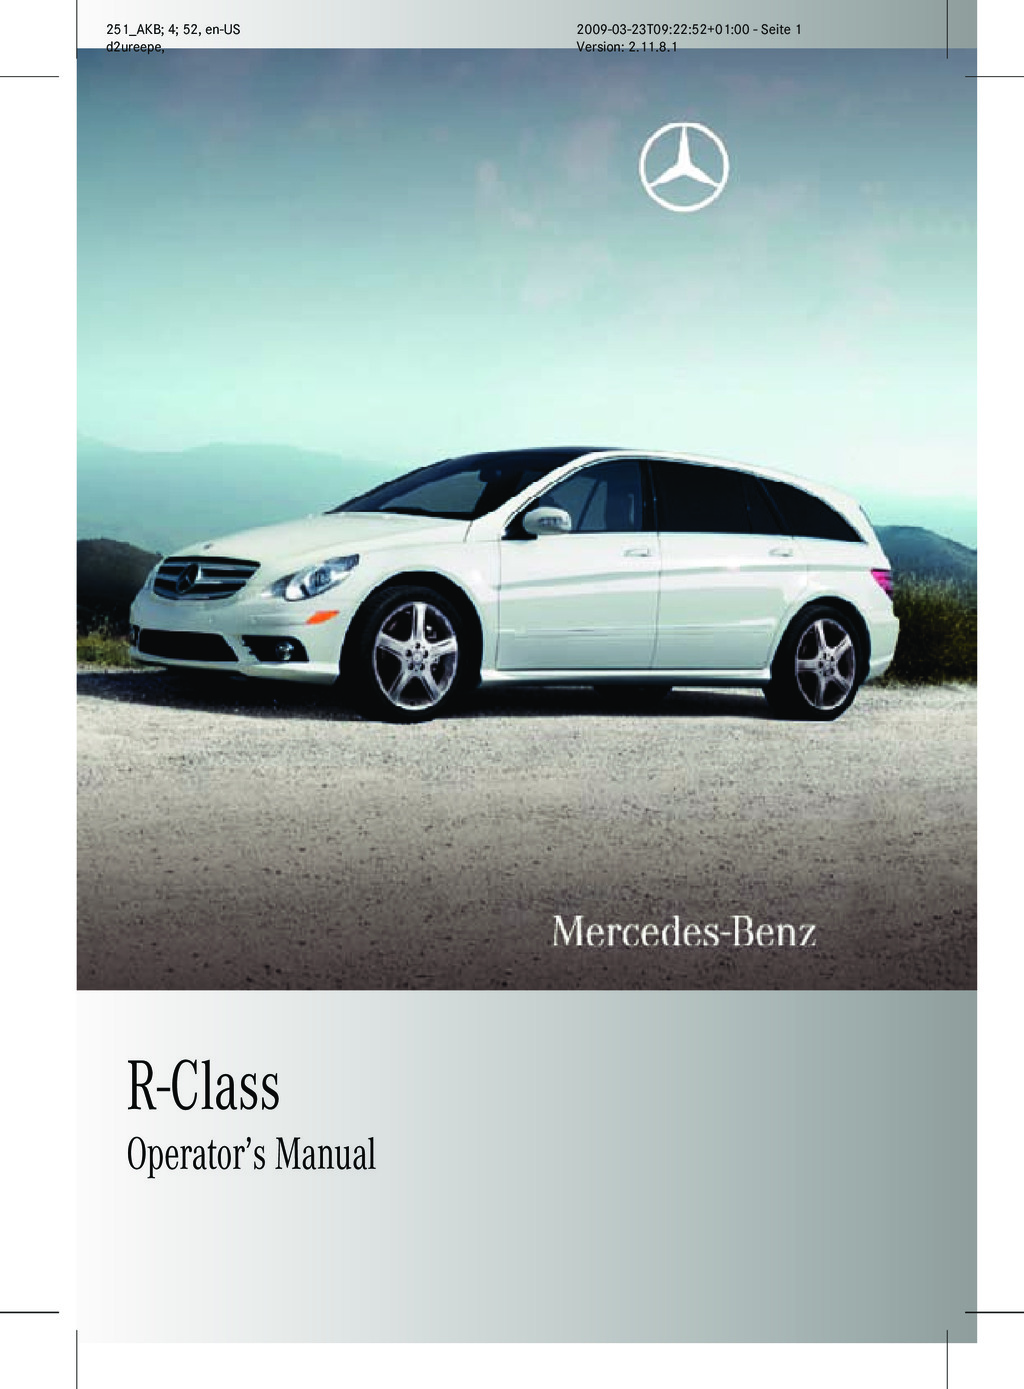 2010 Mercedes-Benz R Class owners manual